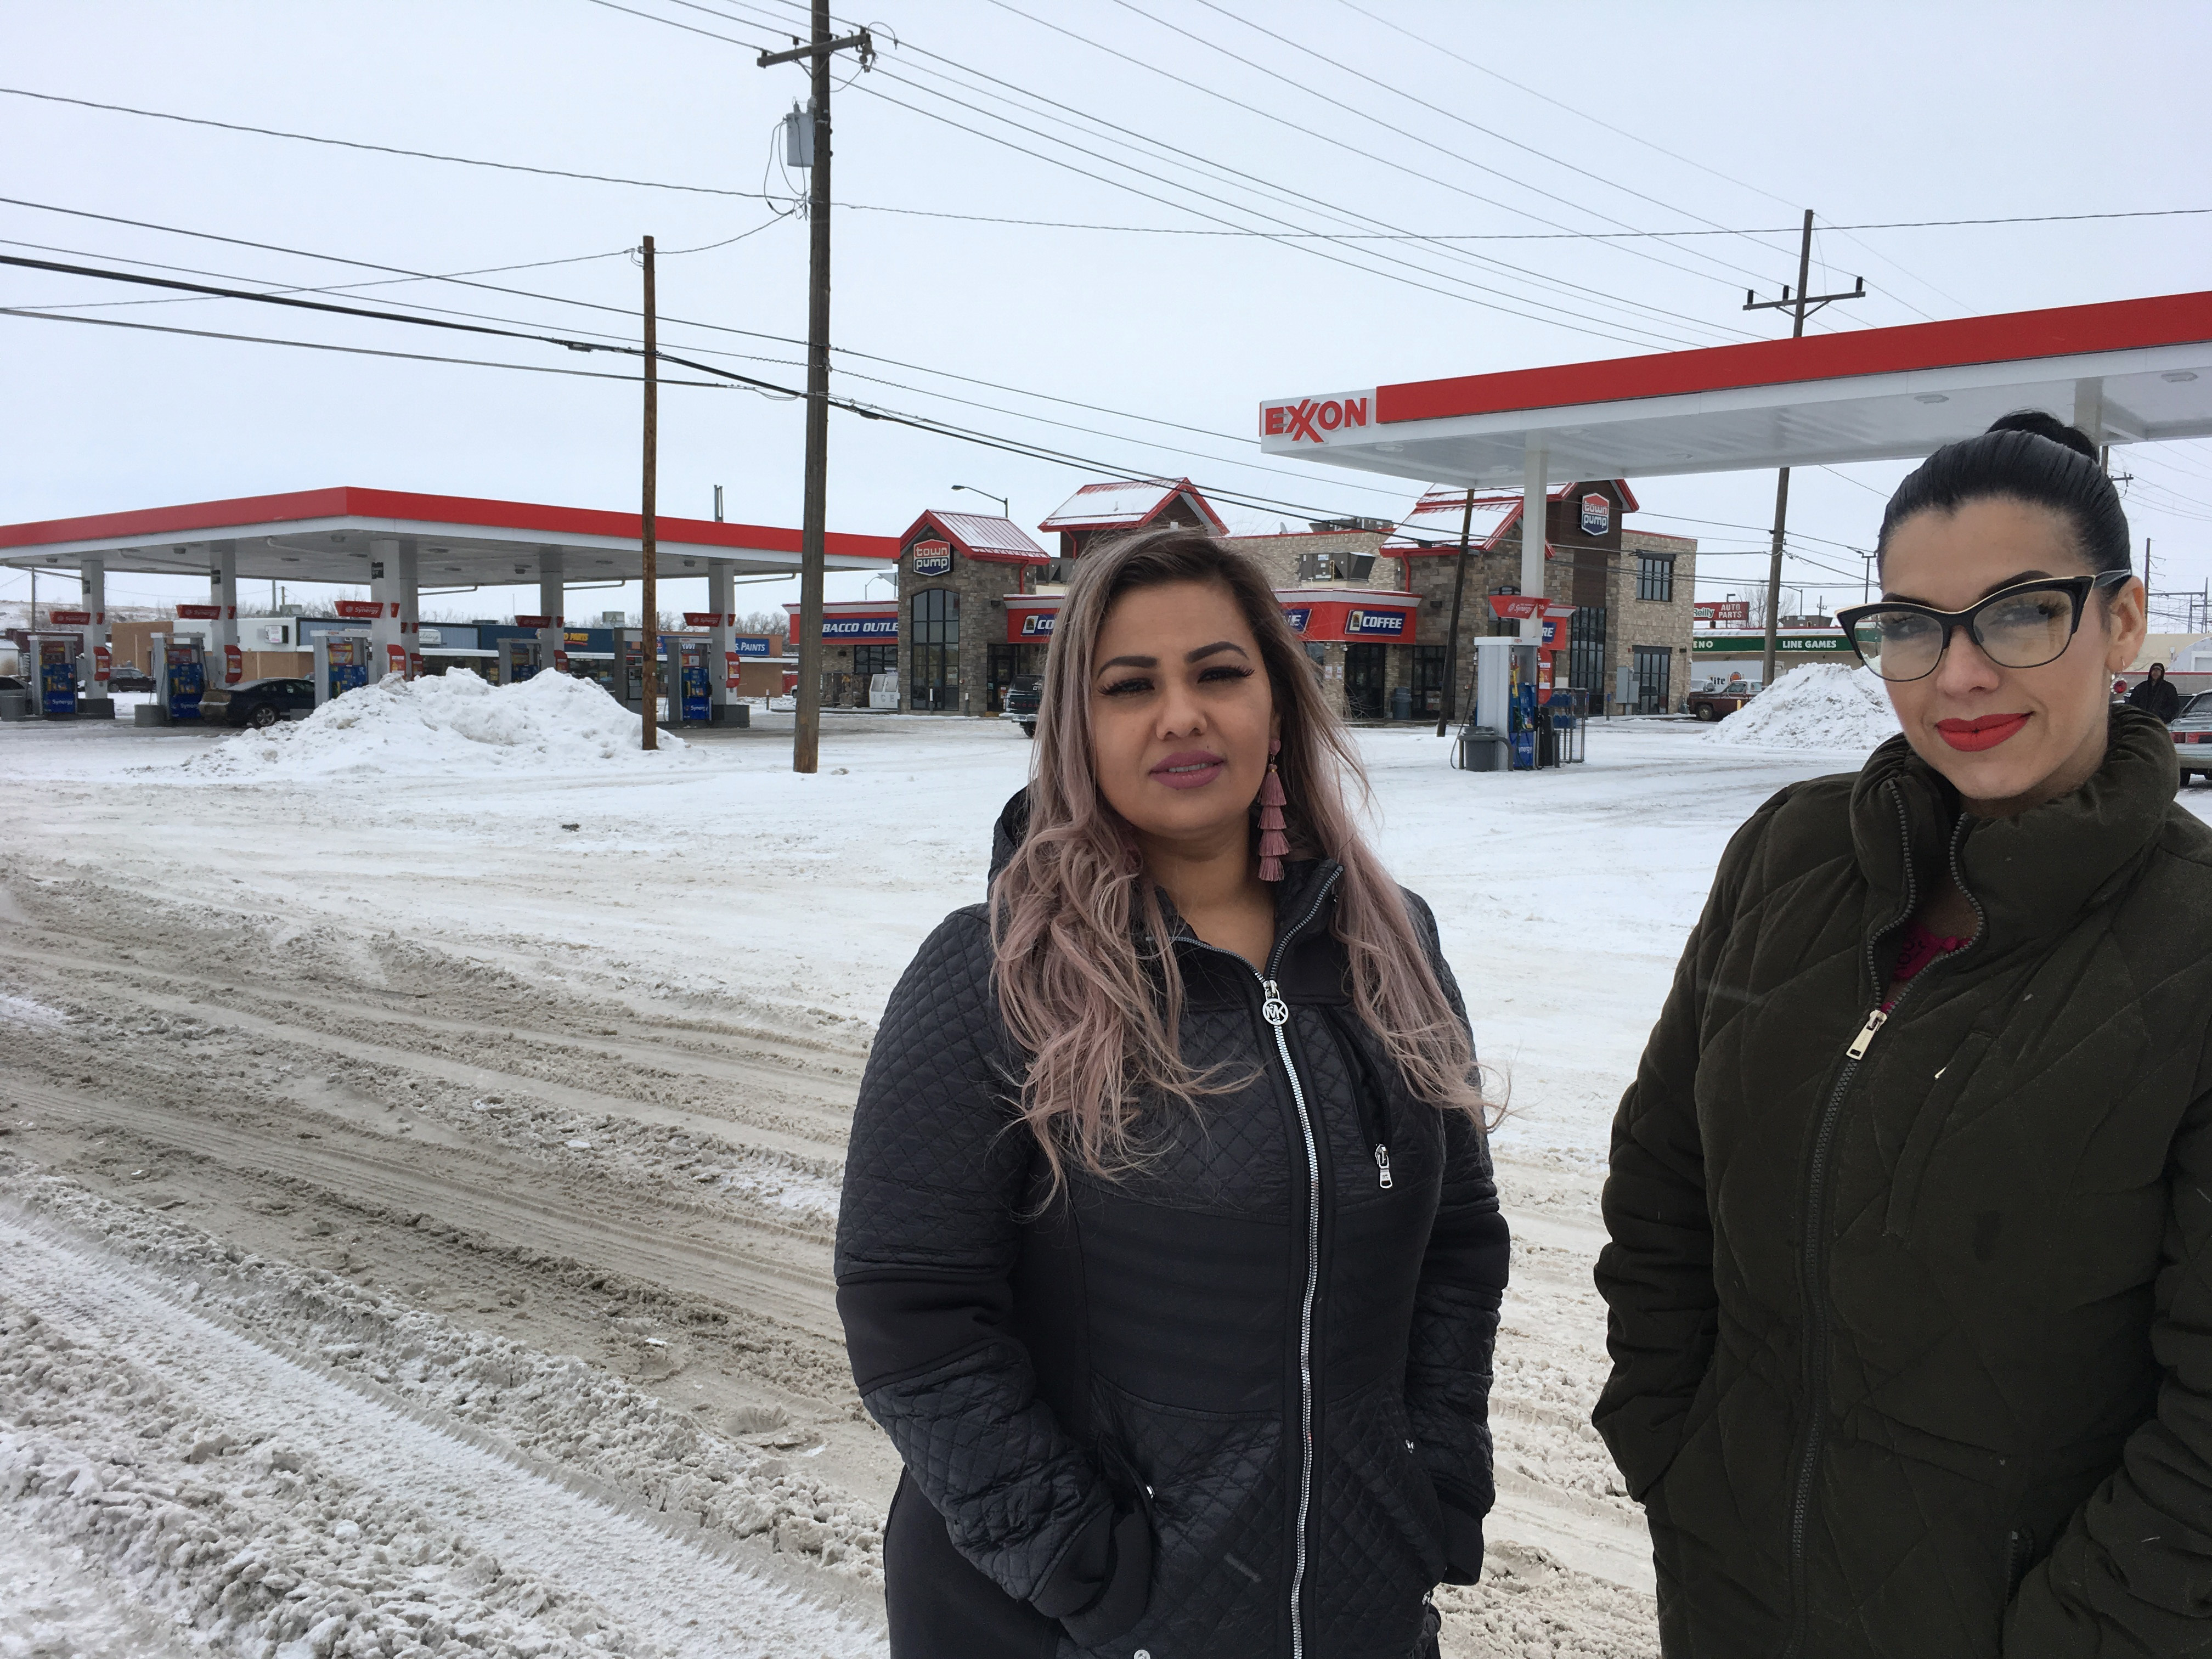 This Jan. 23, 2019 photo released by ACLU of Montana, shows Martha  Mimi  Hernandez, left, and Ana Suda in Havre, Mont. Suda said Friday, Sept. 20 she has been harassed by other Havre residents in stores and restaurants ever since a video of a Border Patrol agent questioning her and Hernandez was uploaded to YouTube.